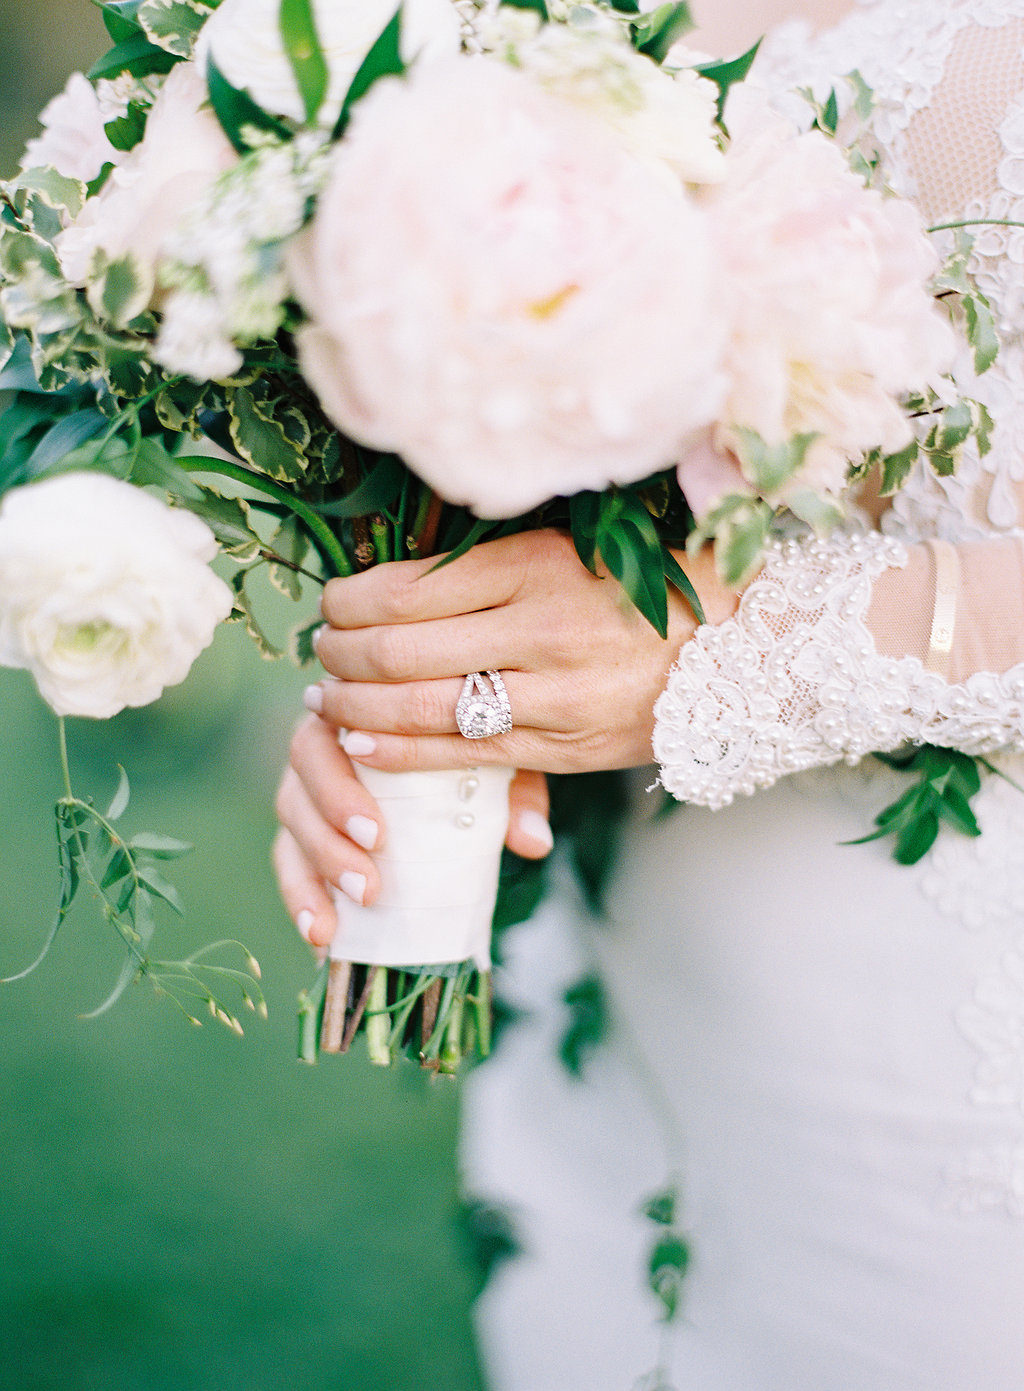 Bouquet by Cody Floral Design | Santa Barbara Wedding Florist | Photography by The Great Romance